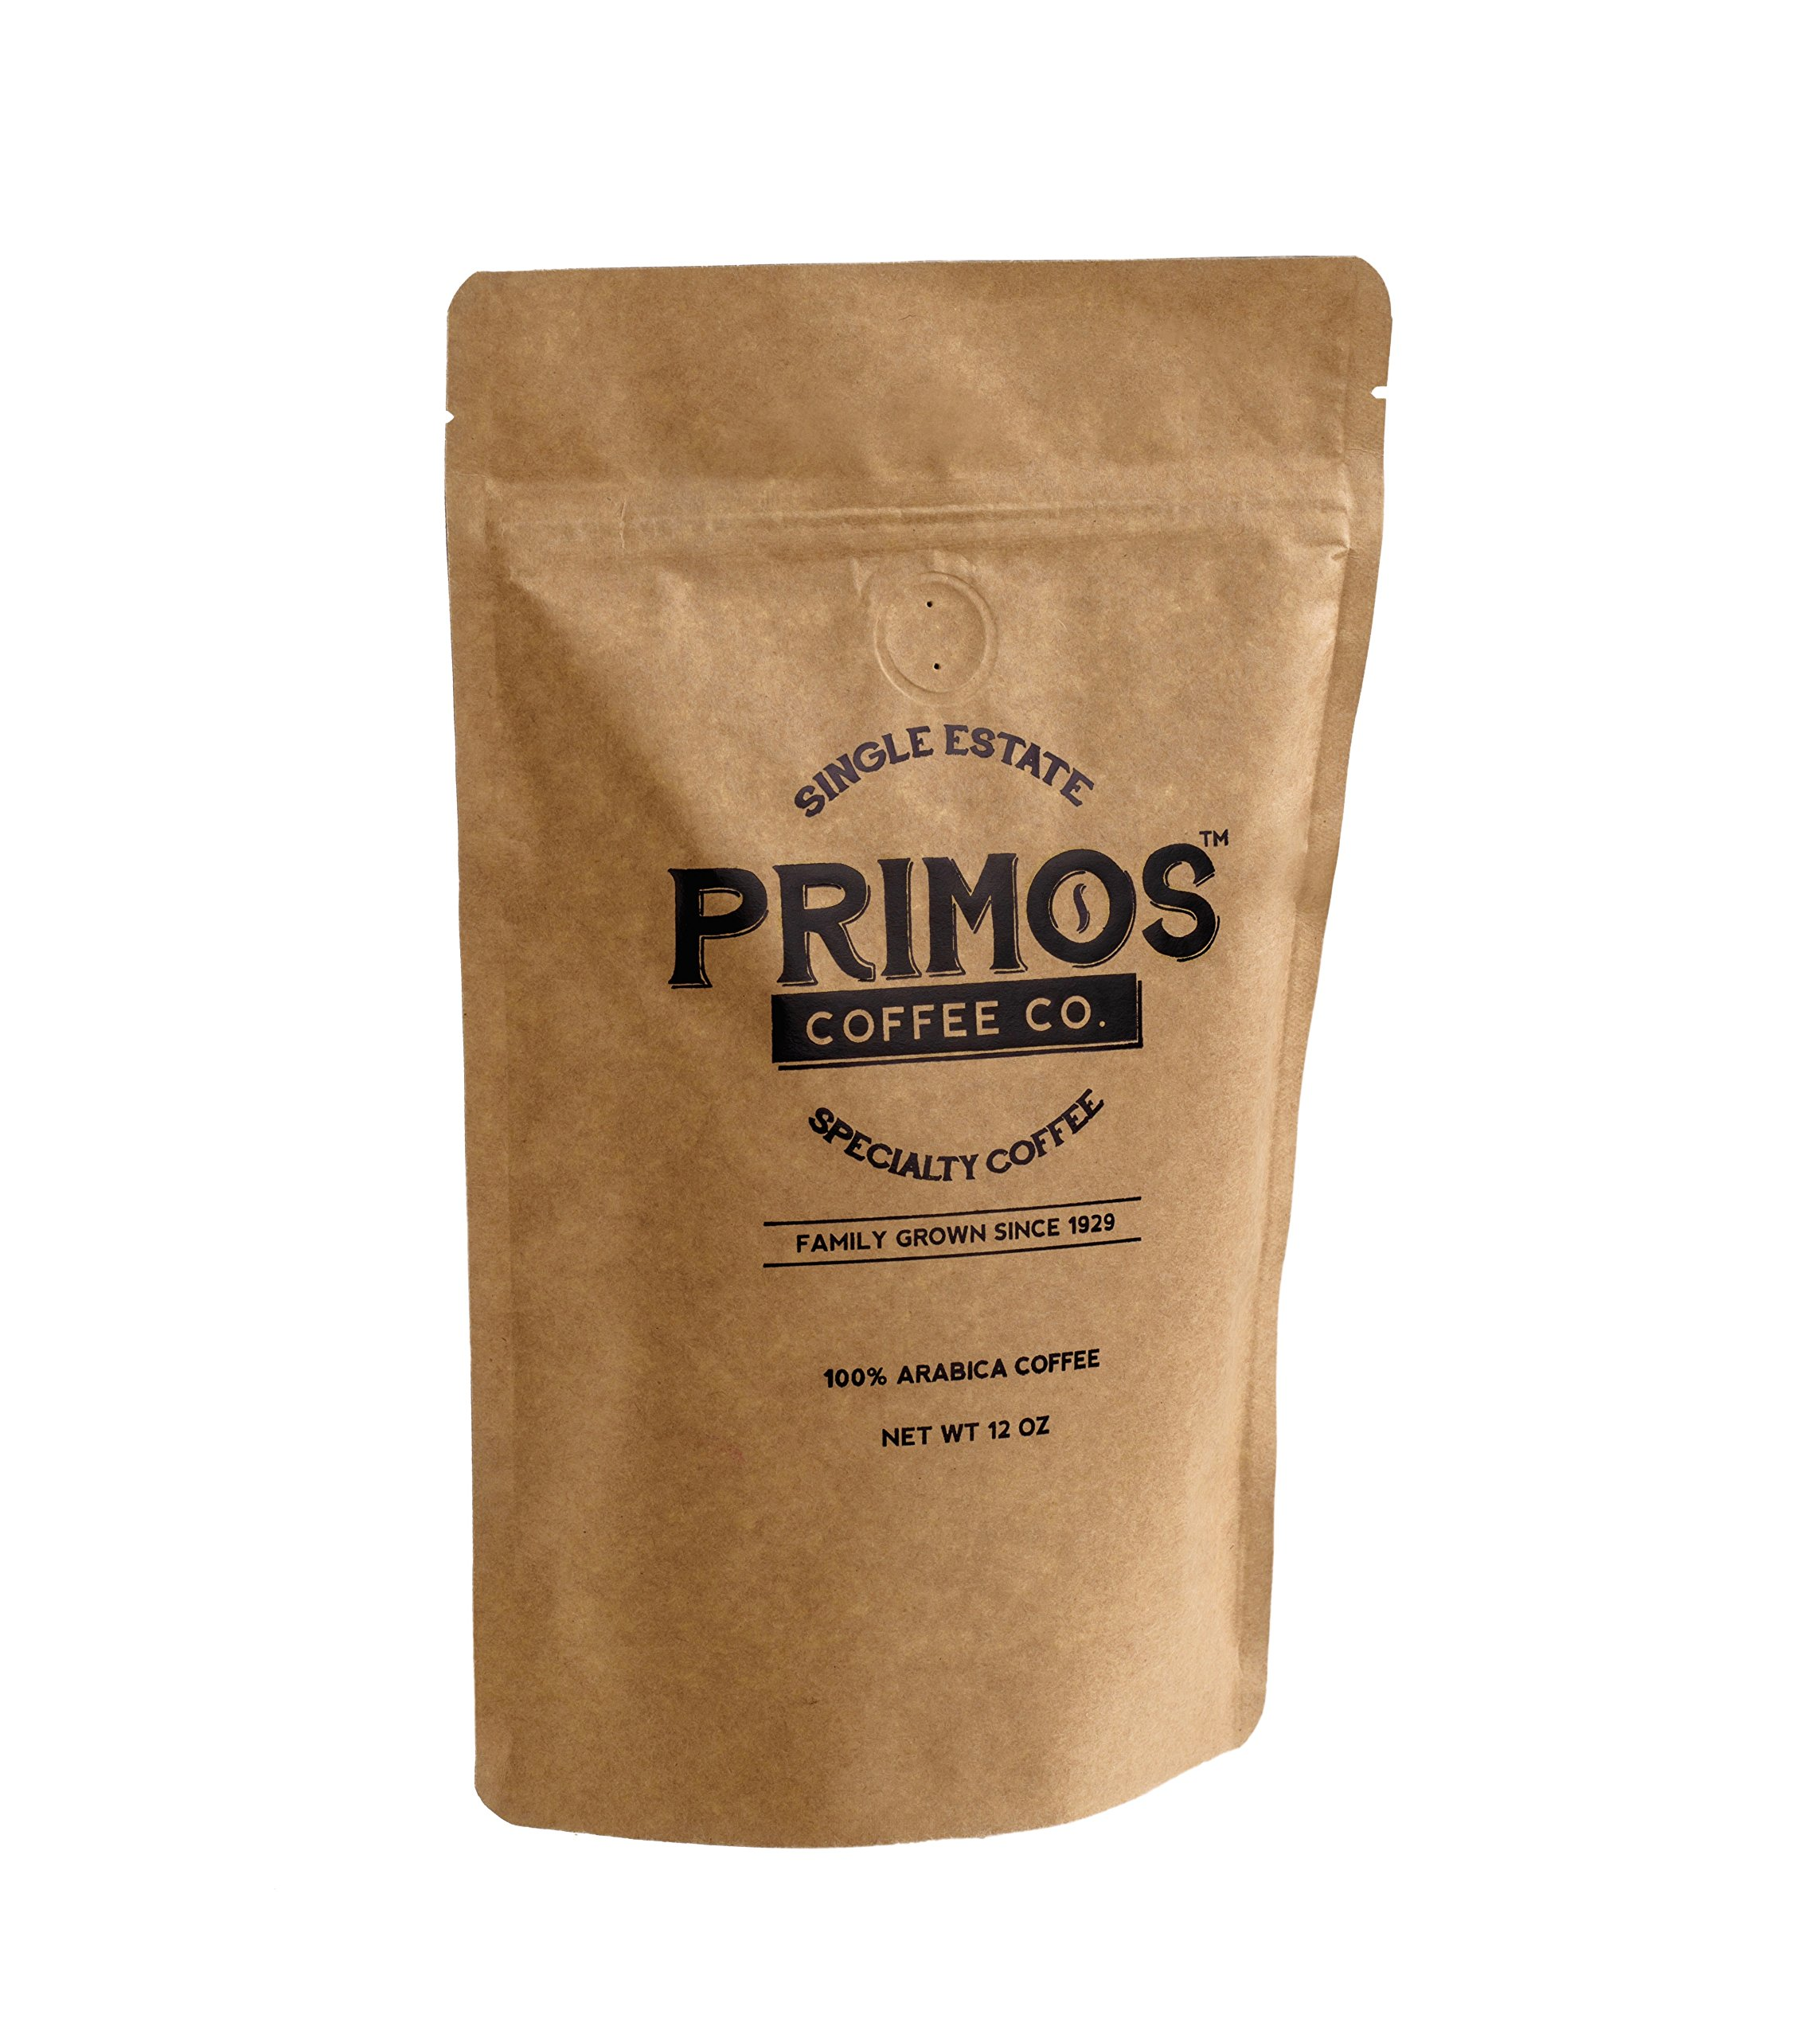 Single Origin Specialty Coffee, Medium Grind, Primos Coffee Co (Medium Roast, 12 Oz)